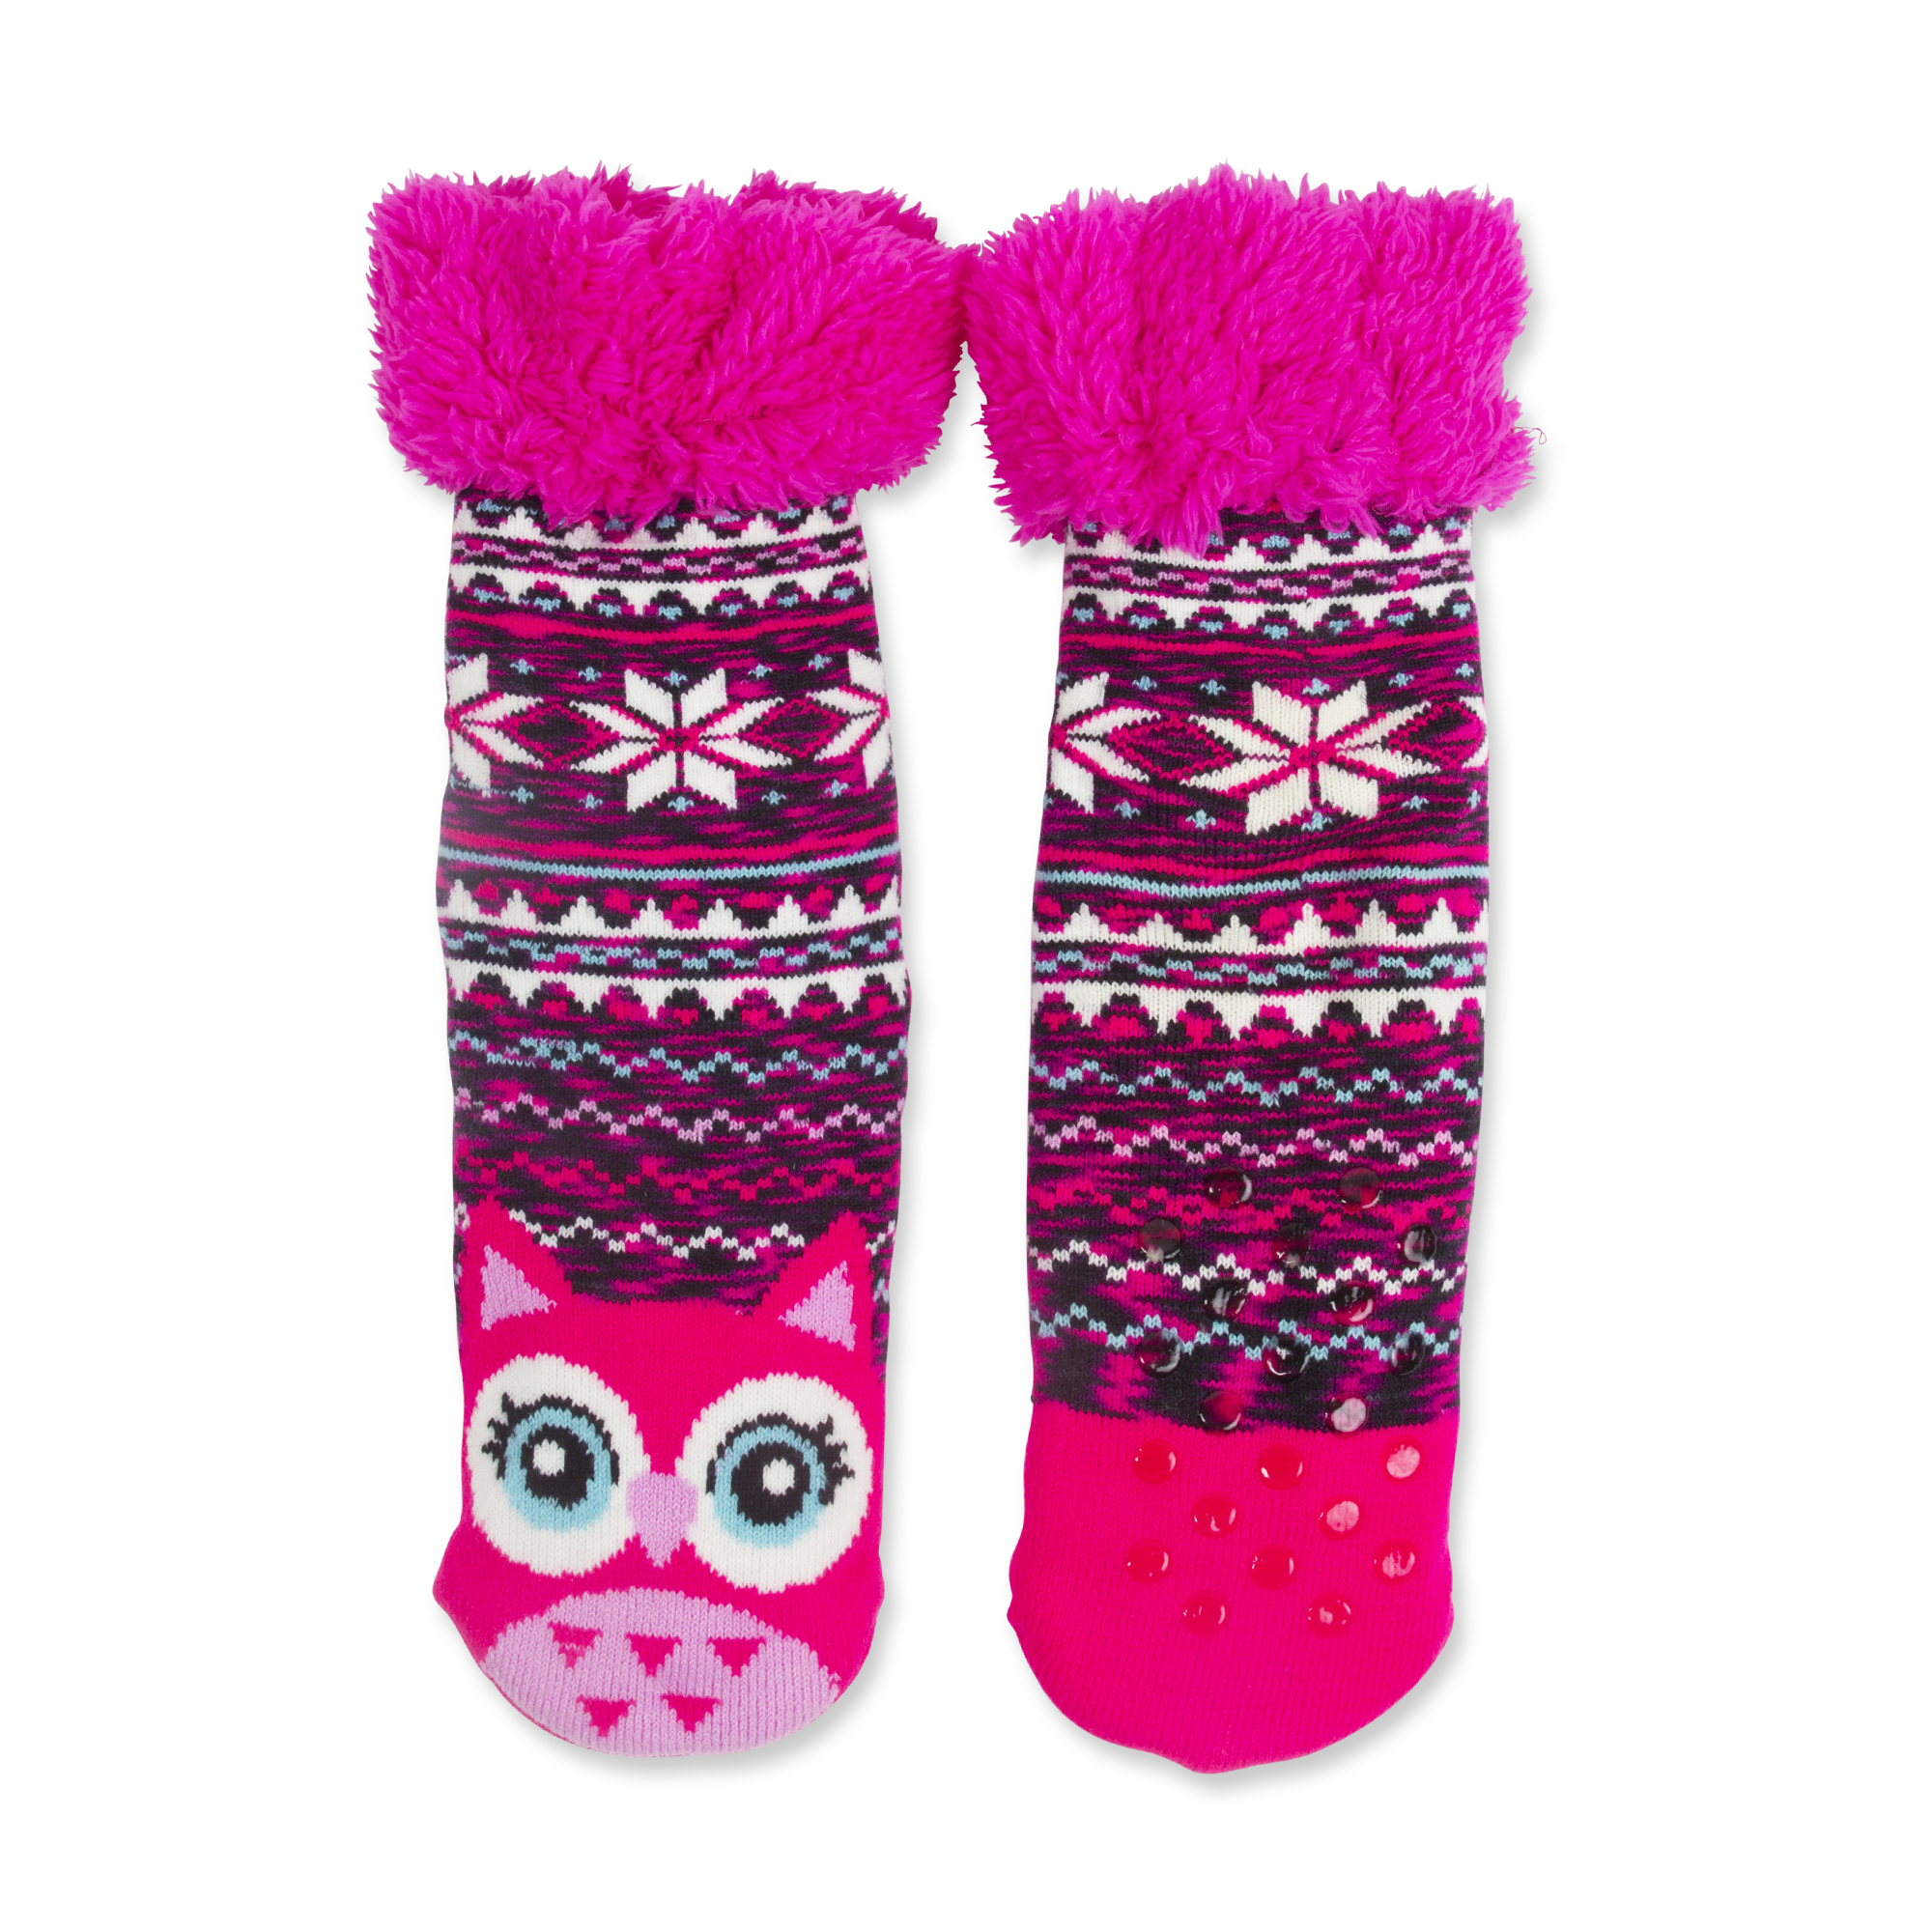 Girls' Owl Fair Isle Fuzzy Babba Slipper Socks - Walmart.com